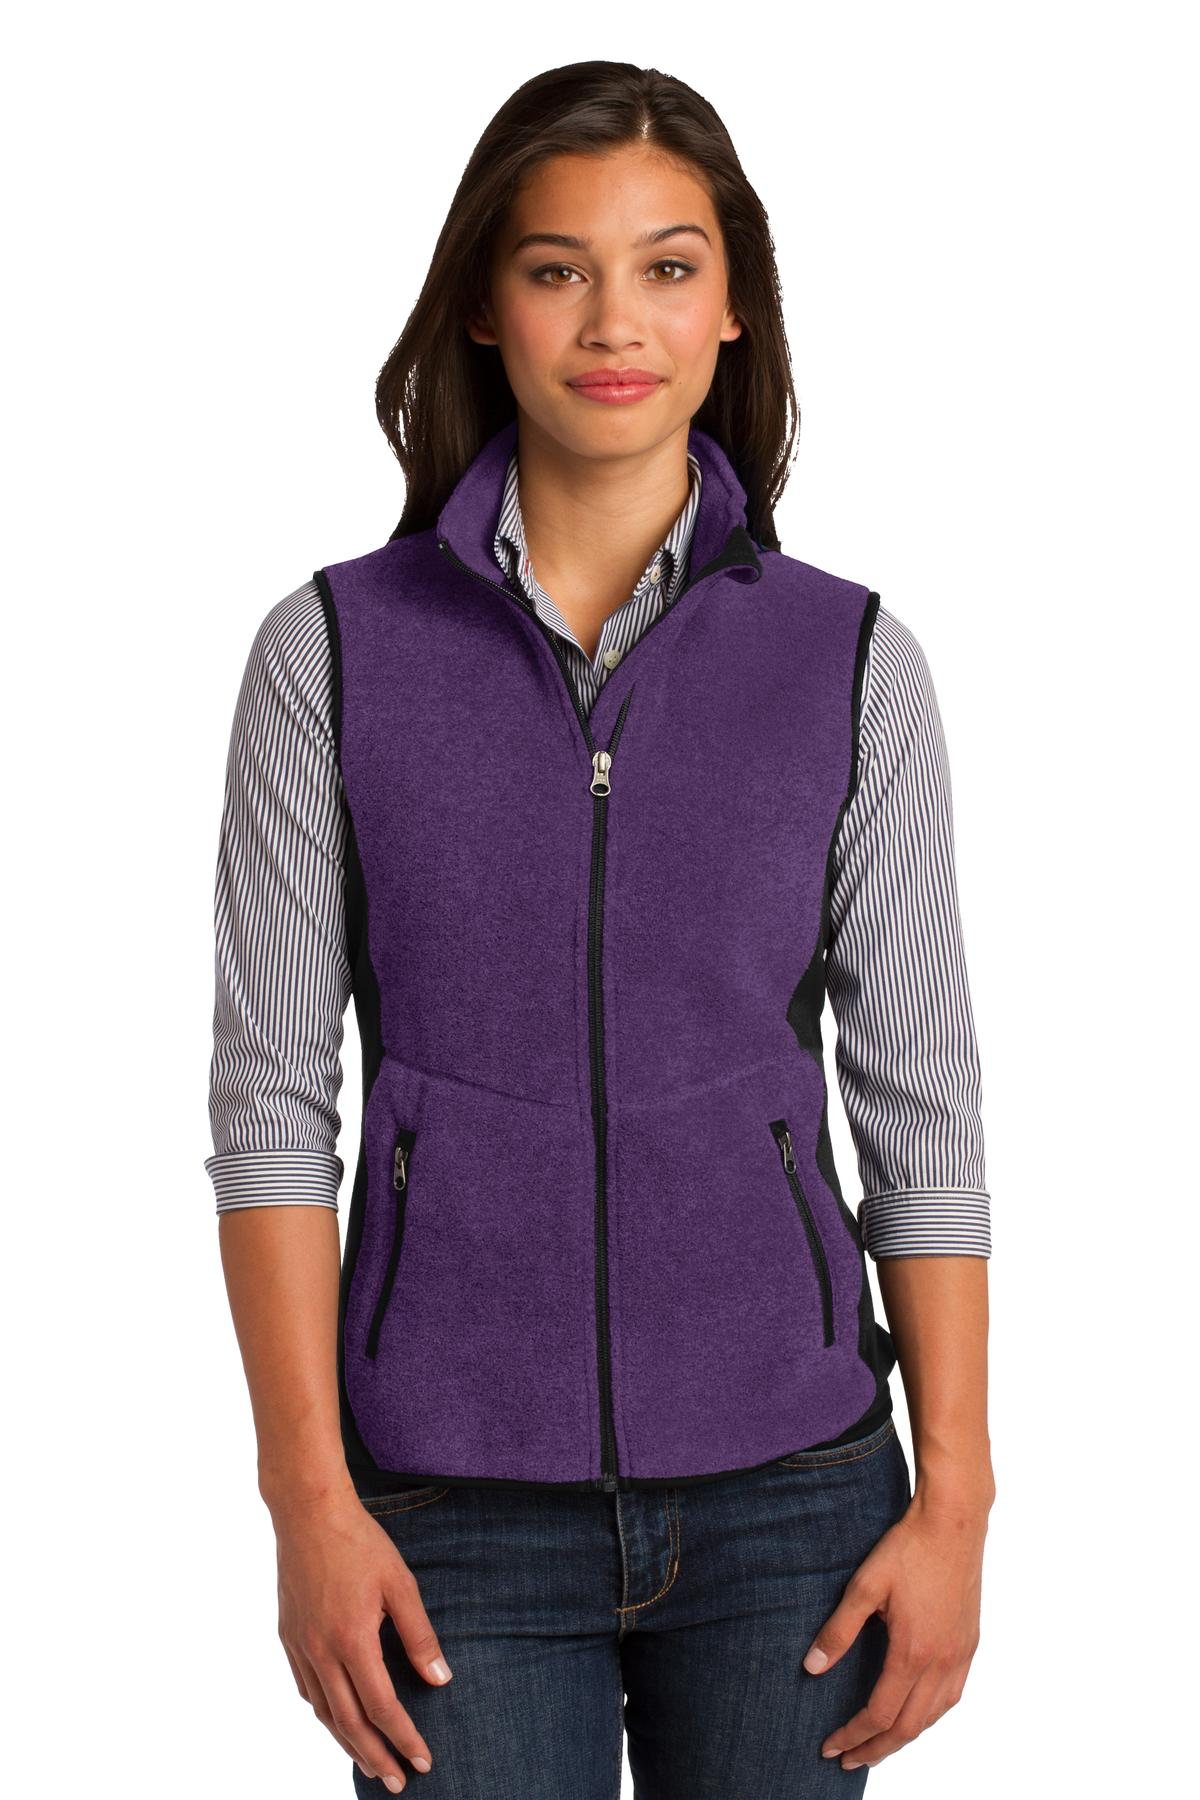 Outerwear-Vests-21